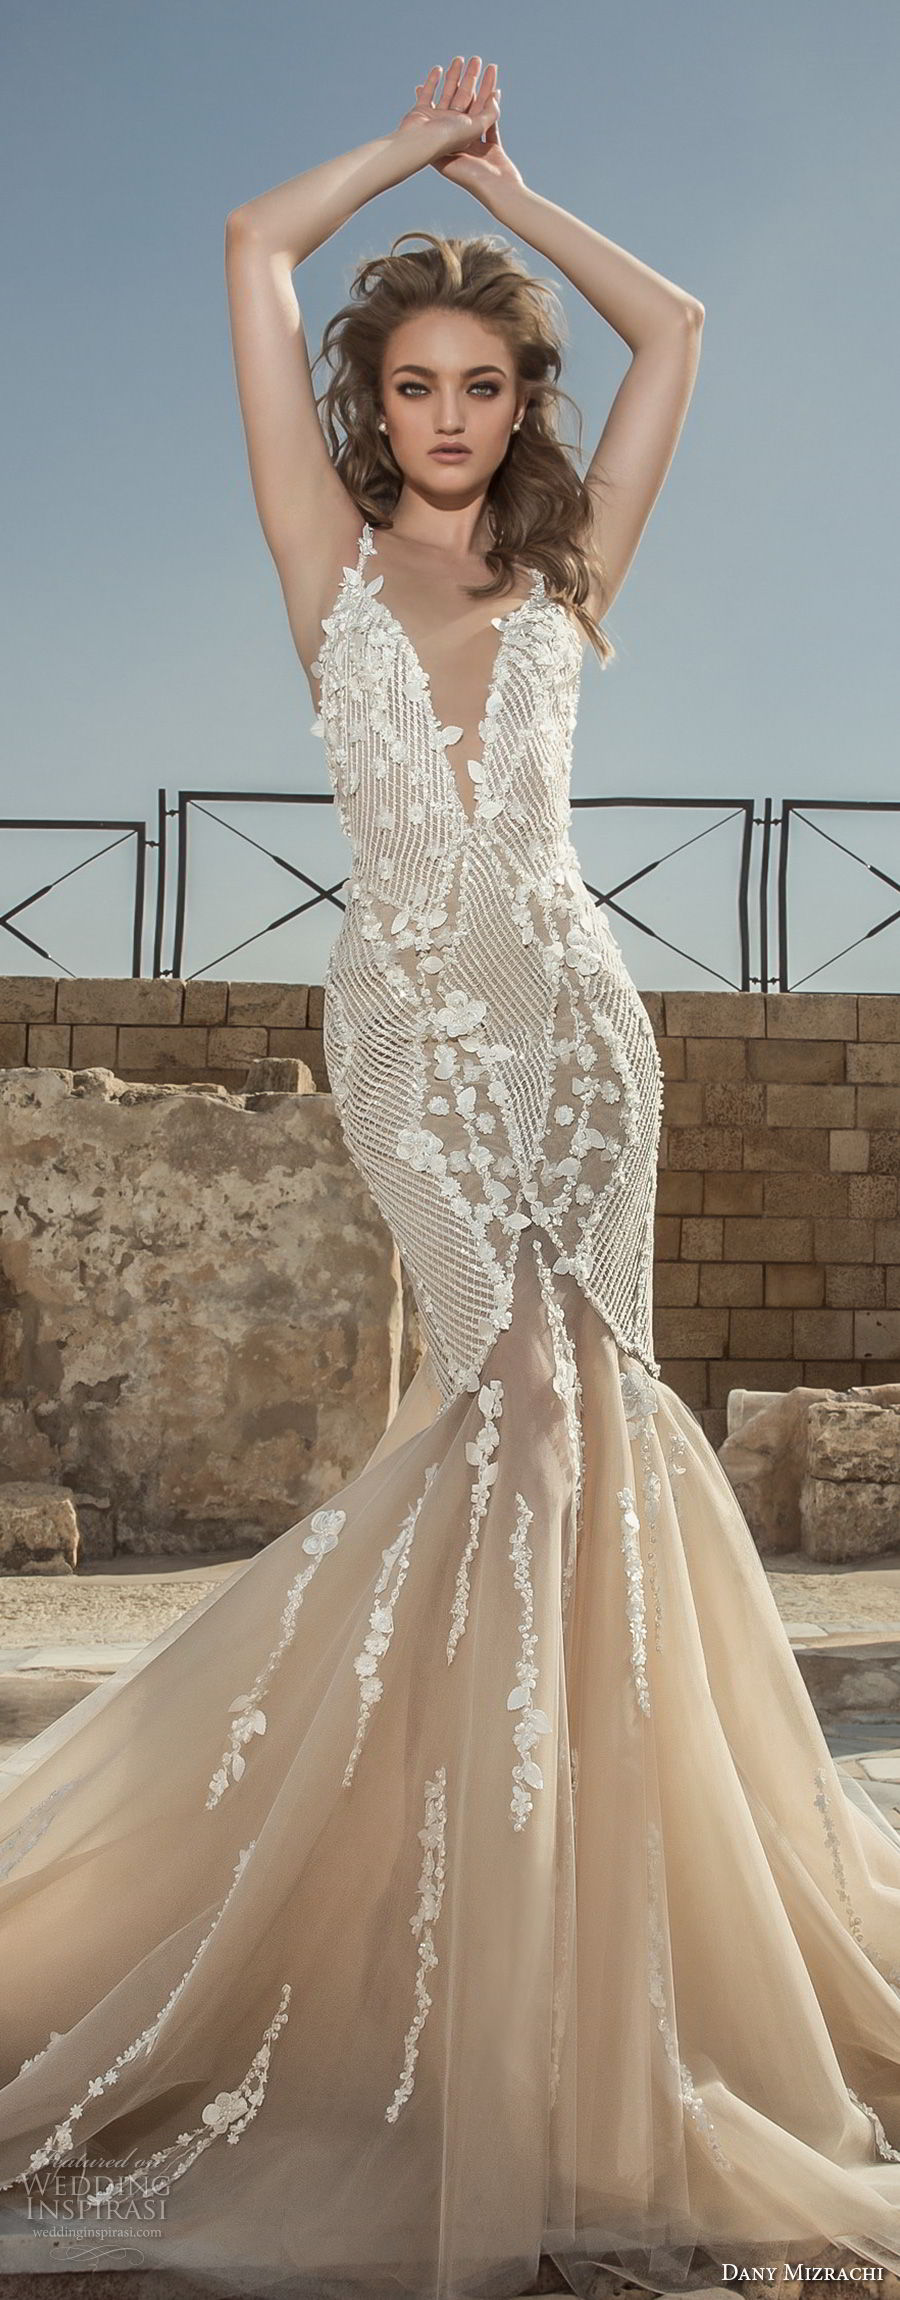 Dany Mizrachi 2018 Wedding Dresses Wedding Inspirasi